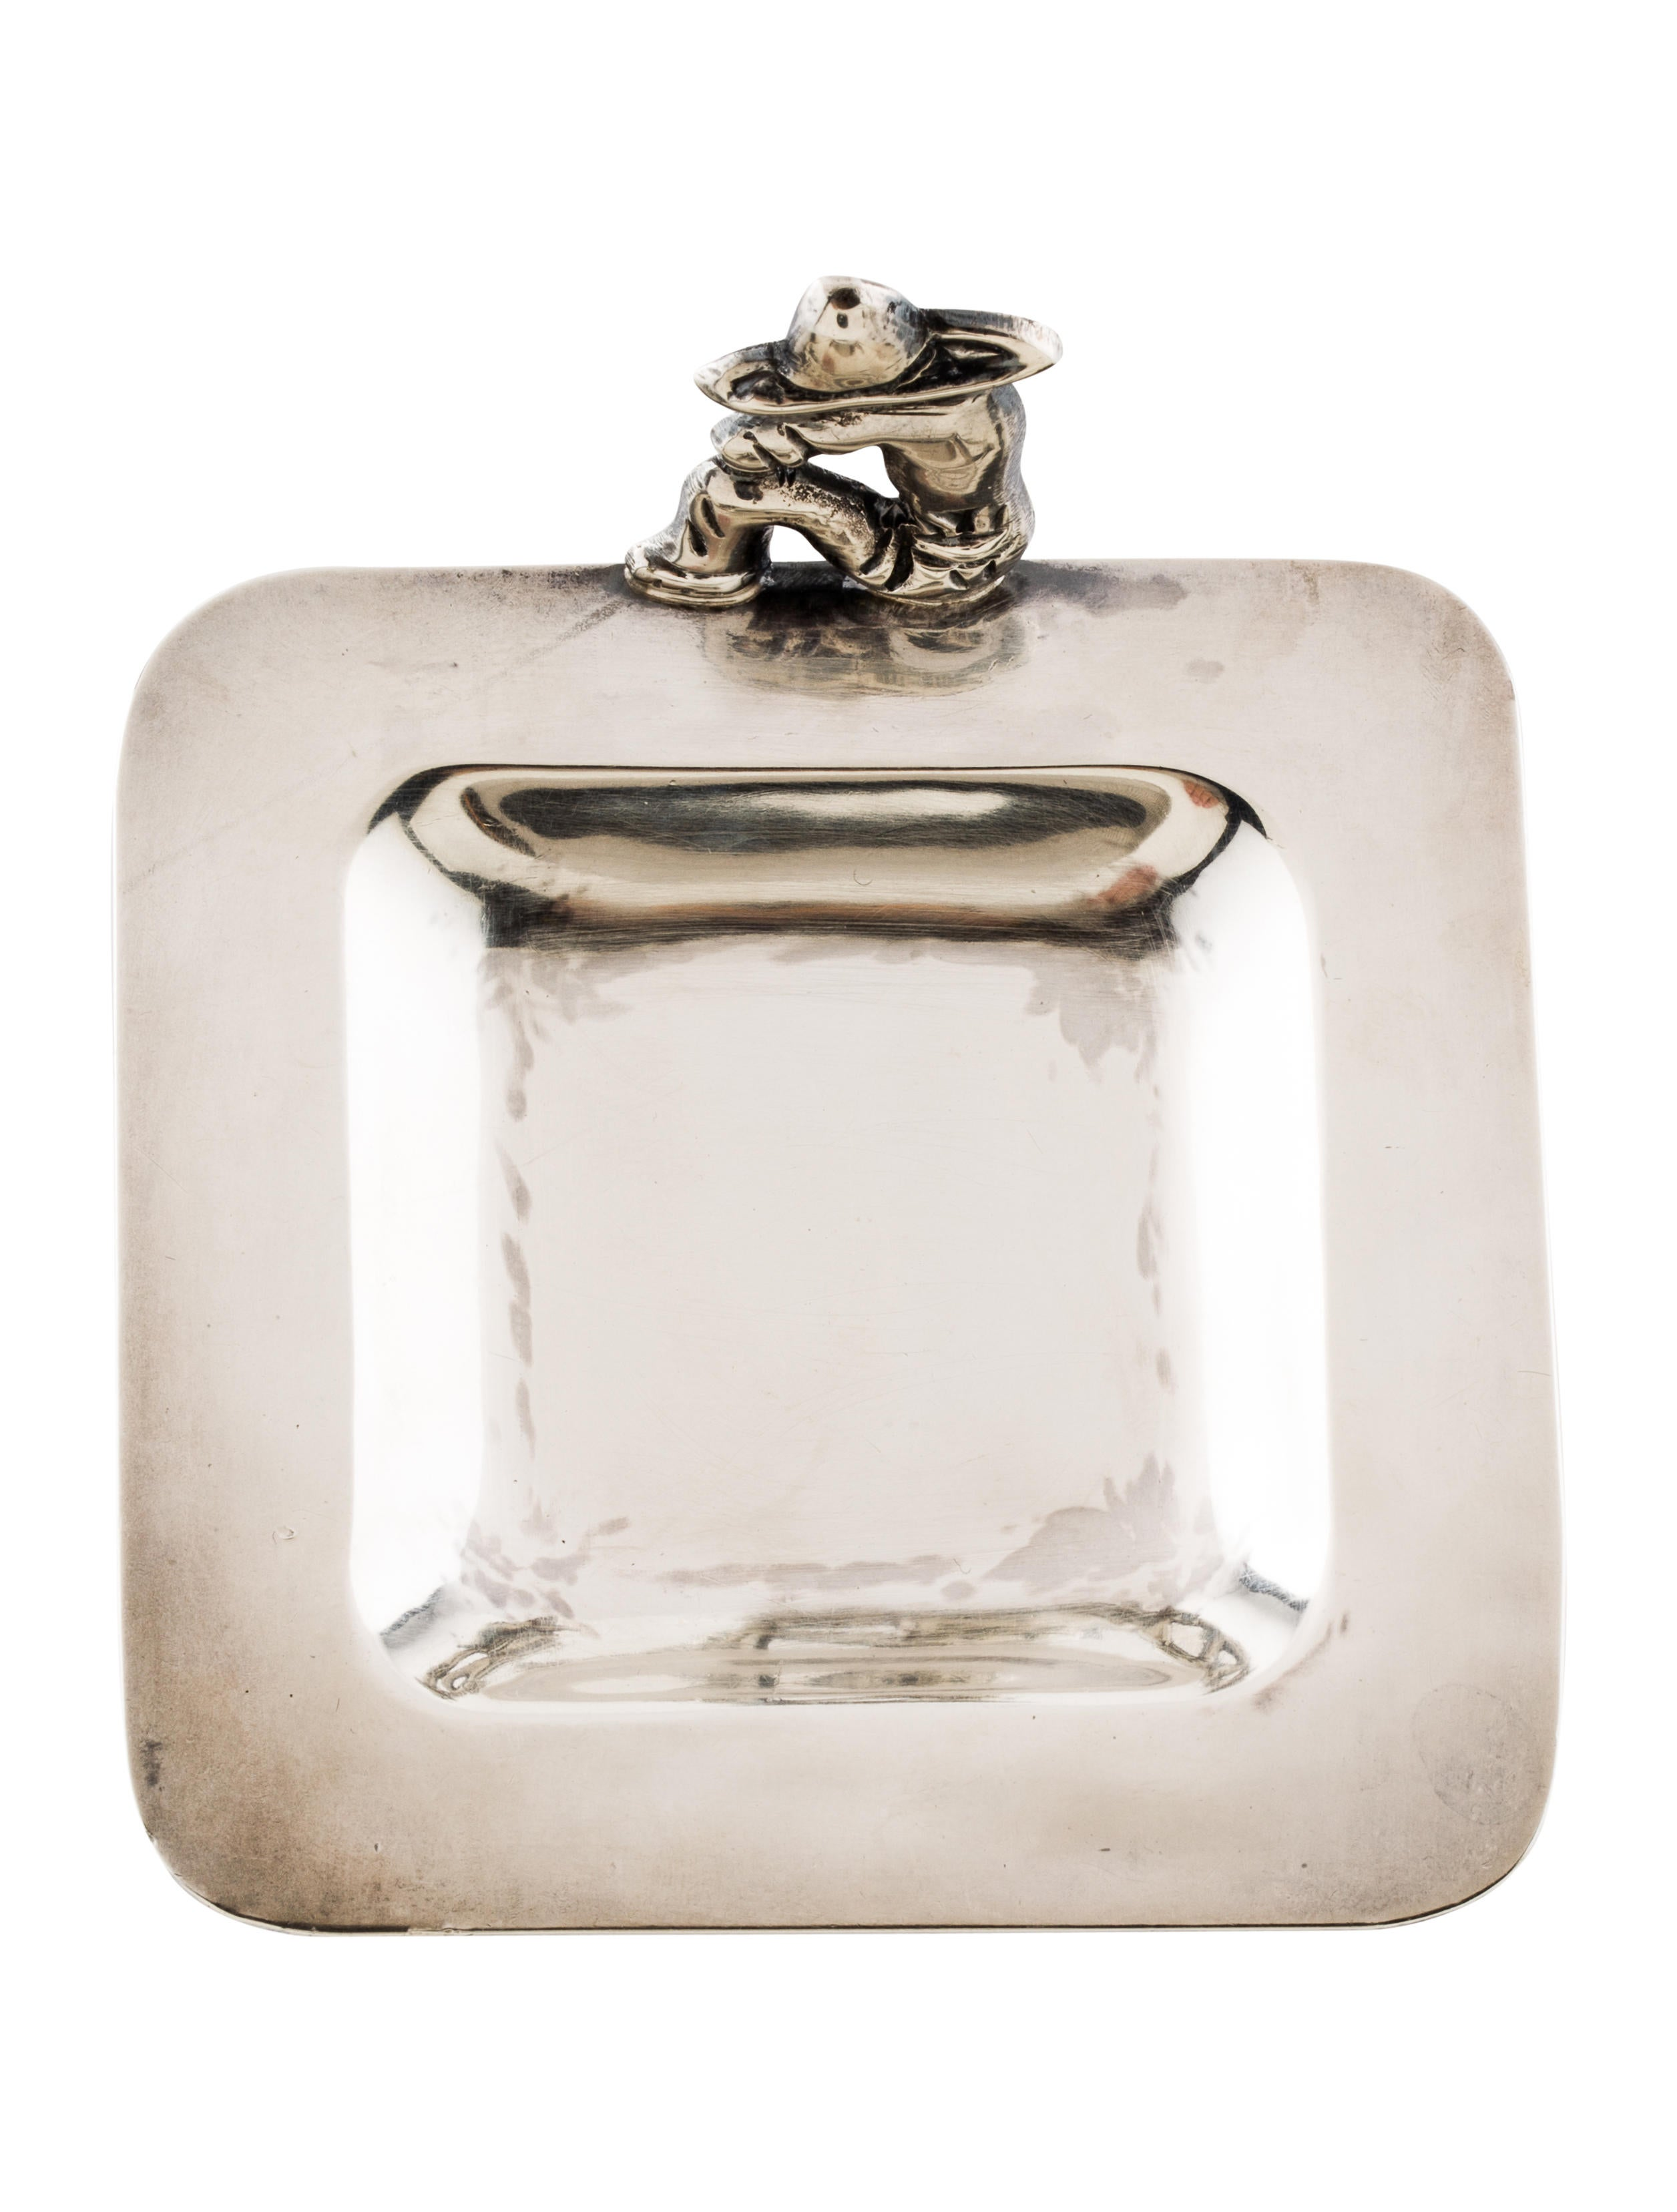 Sanborns sterling silver ash tray decor and accessories for Artistic accents genuine silver decoration